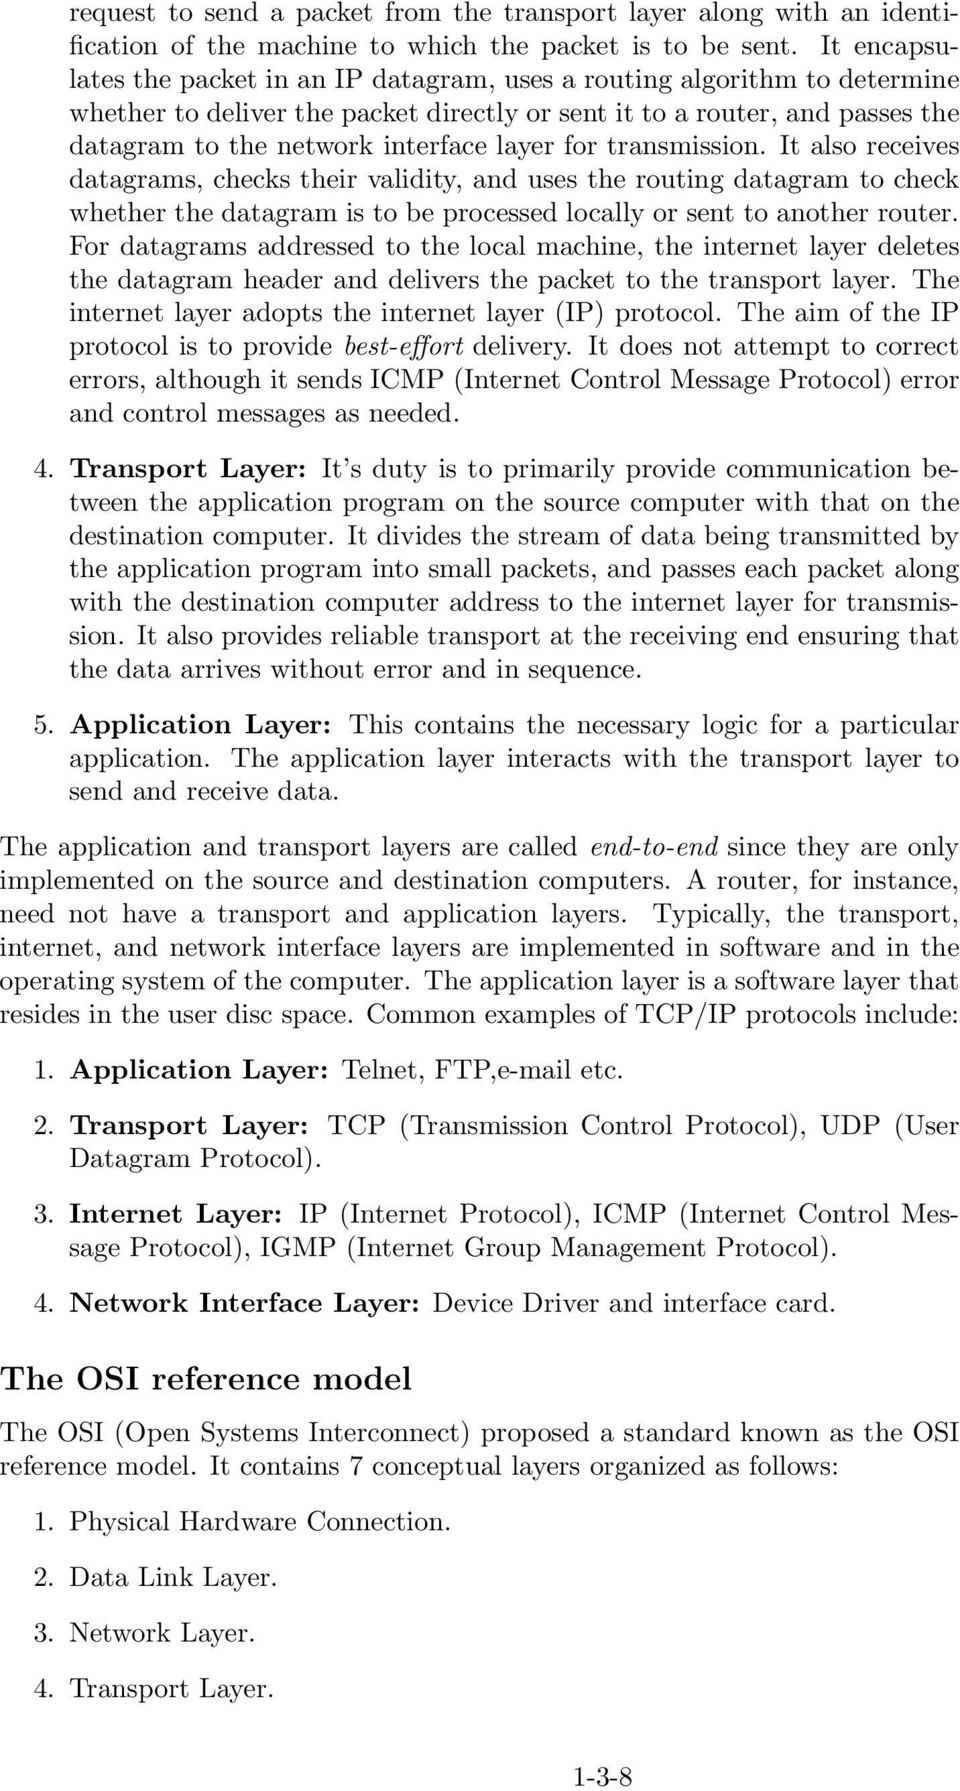 layer for transmission. It also receives datagrams, checks their validity, and uses the routing datagram to check whether the datagram is to be processed locally or sent to another router.